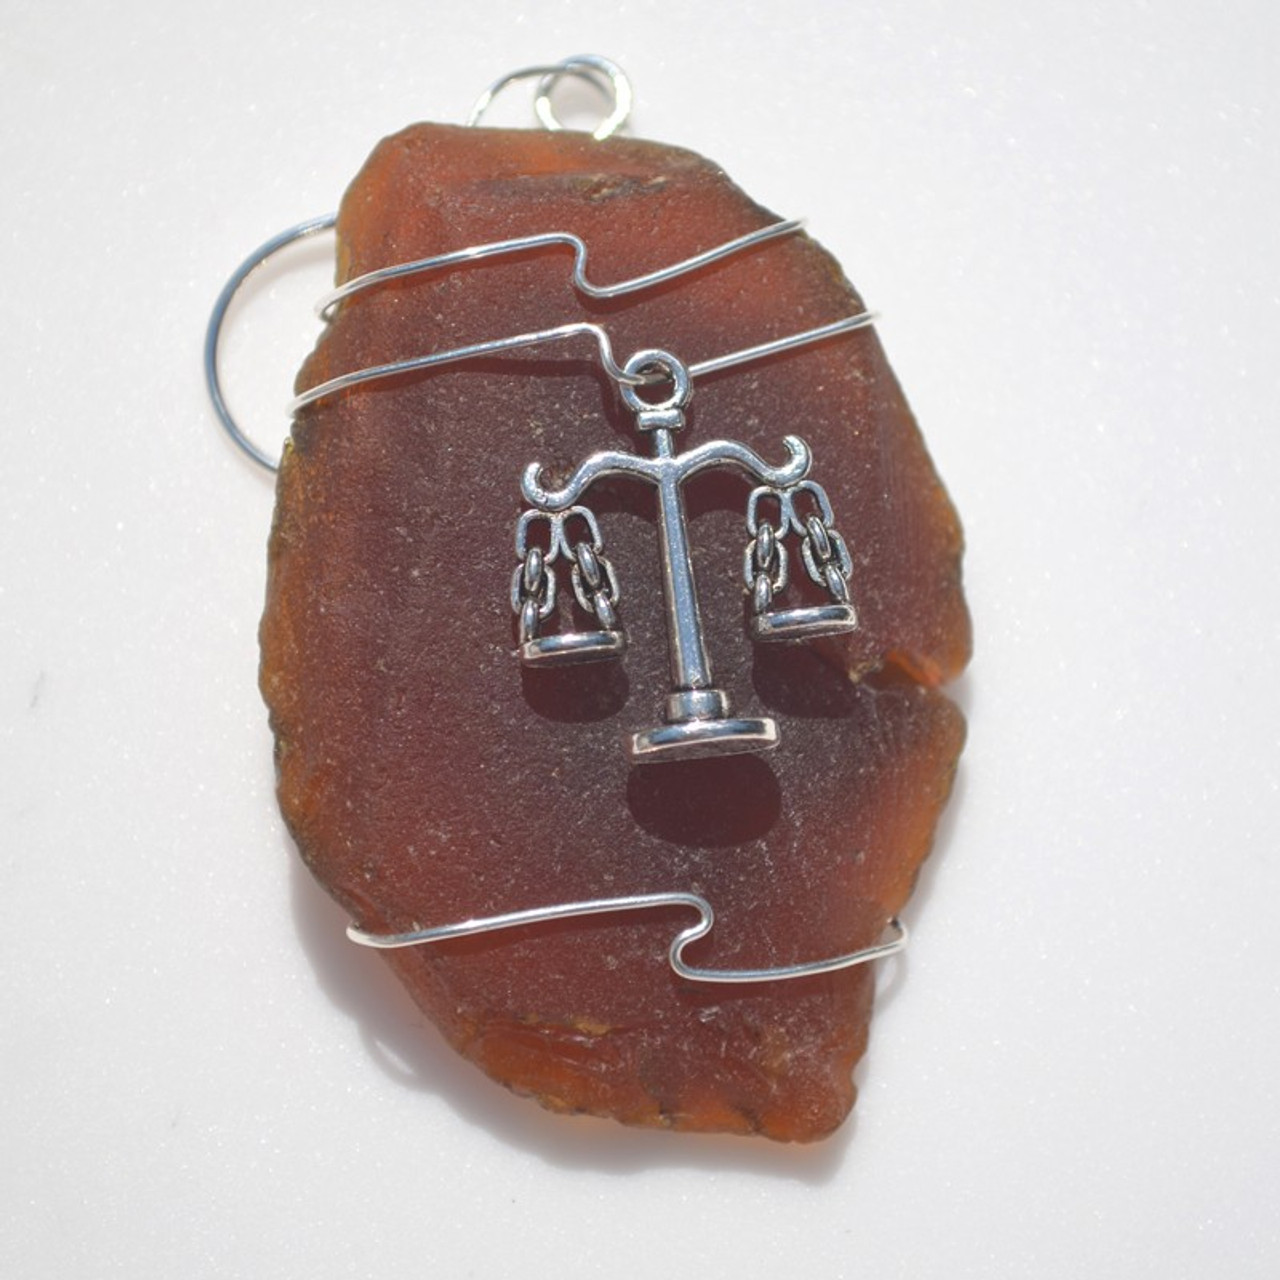 Legal Scales Christmas Ornament